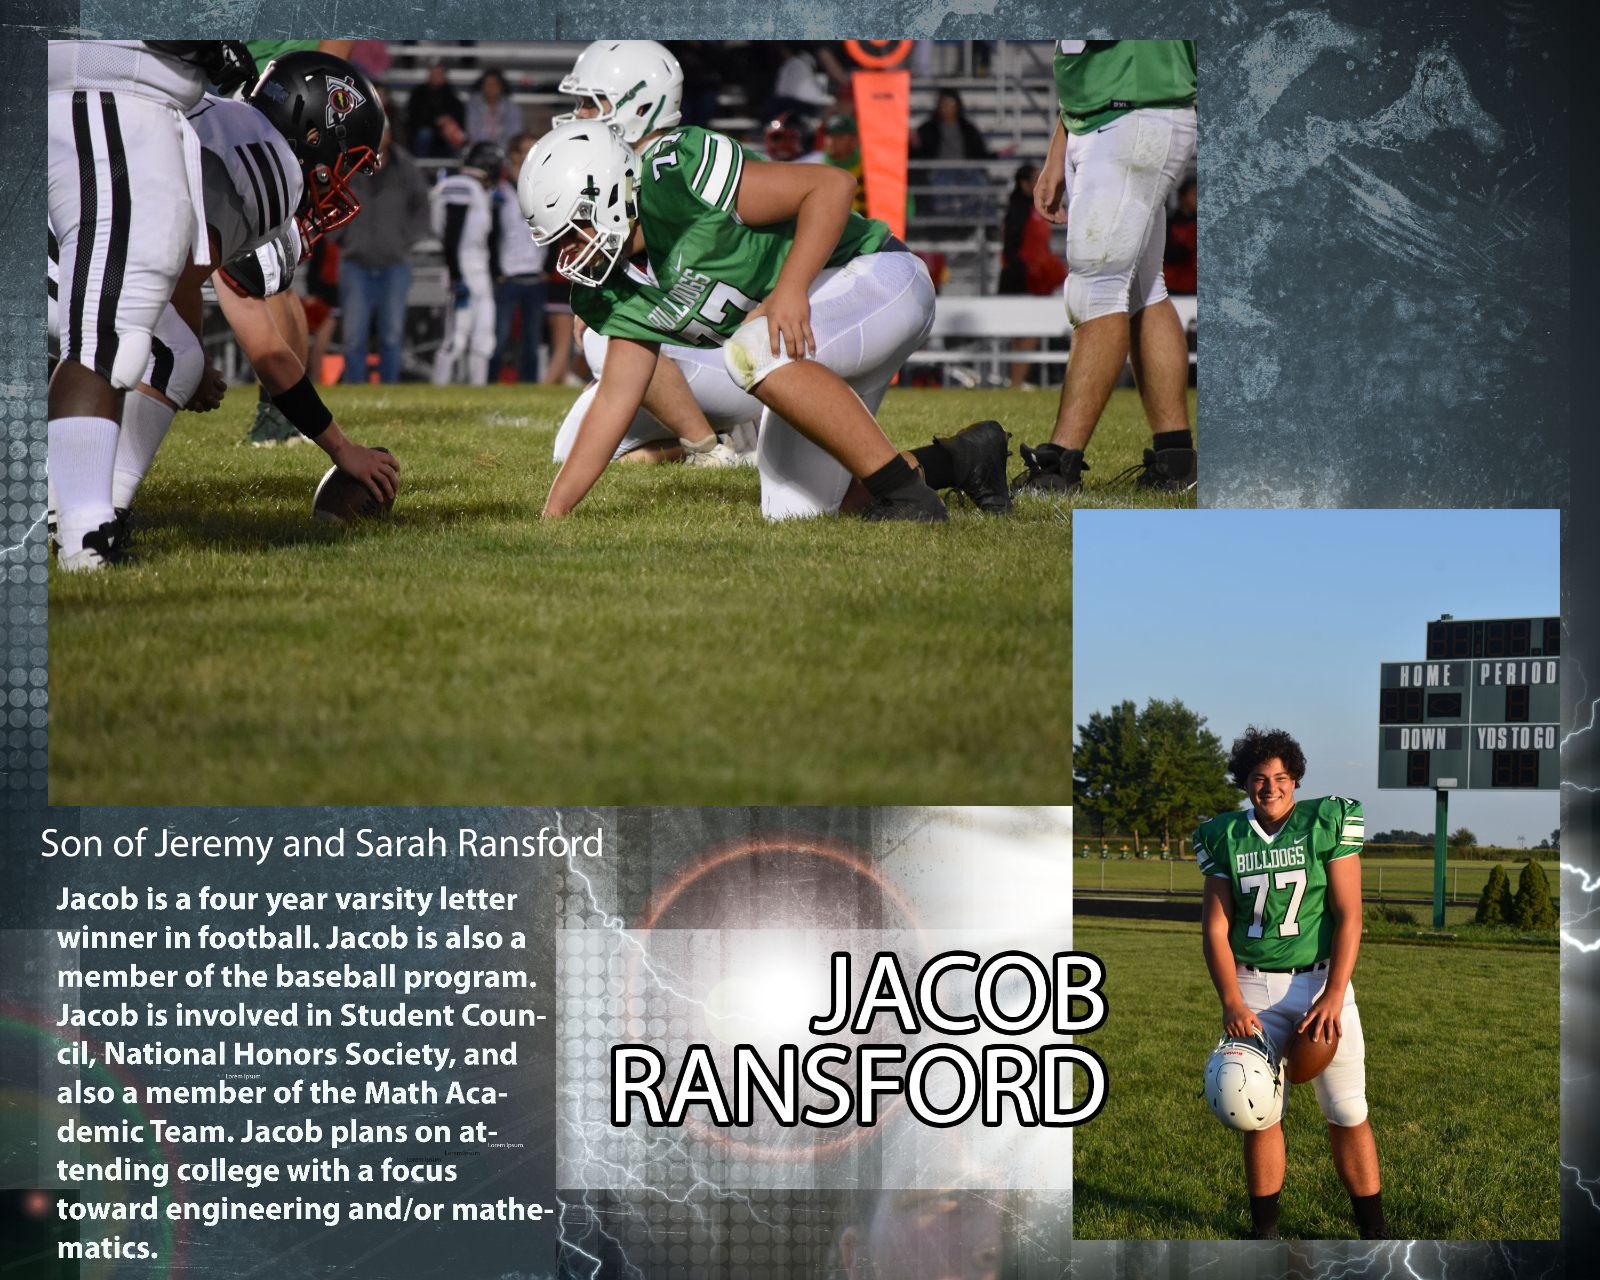 Senior Football Player – Jacob Ransford